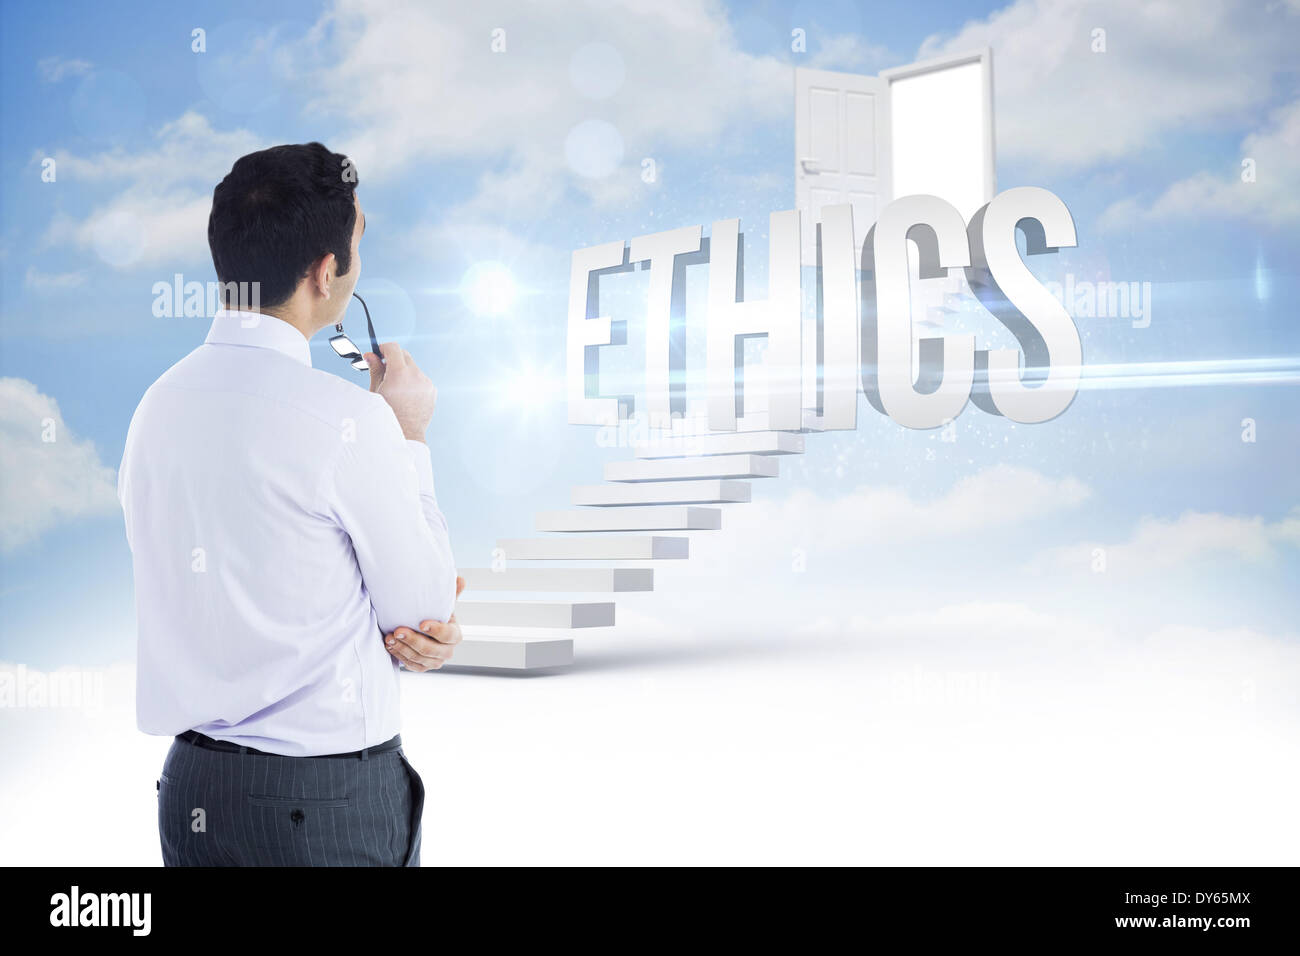 Ethics against steps leading to open door in the sky - Stock Image